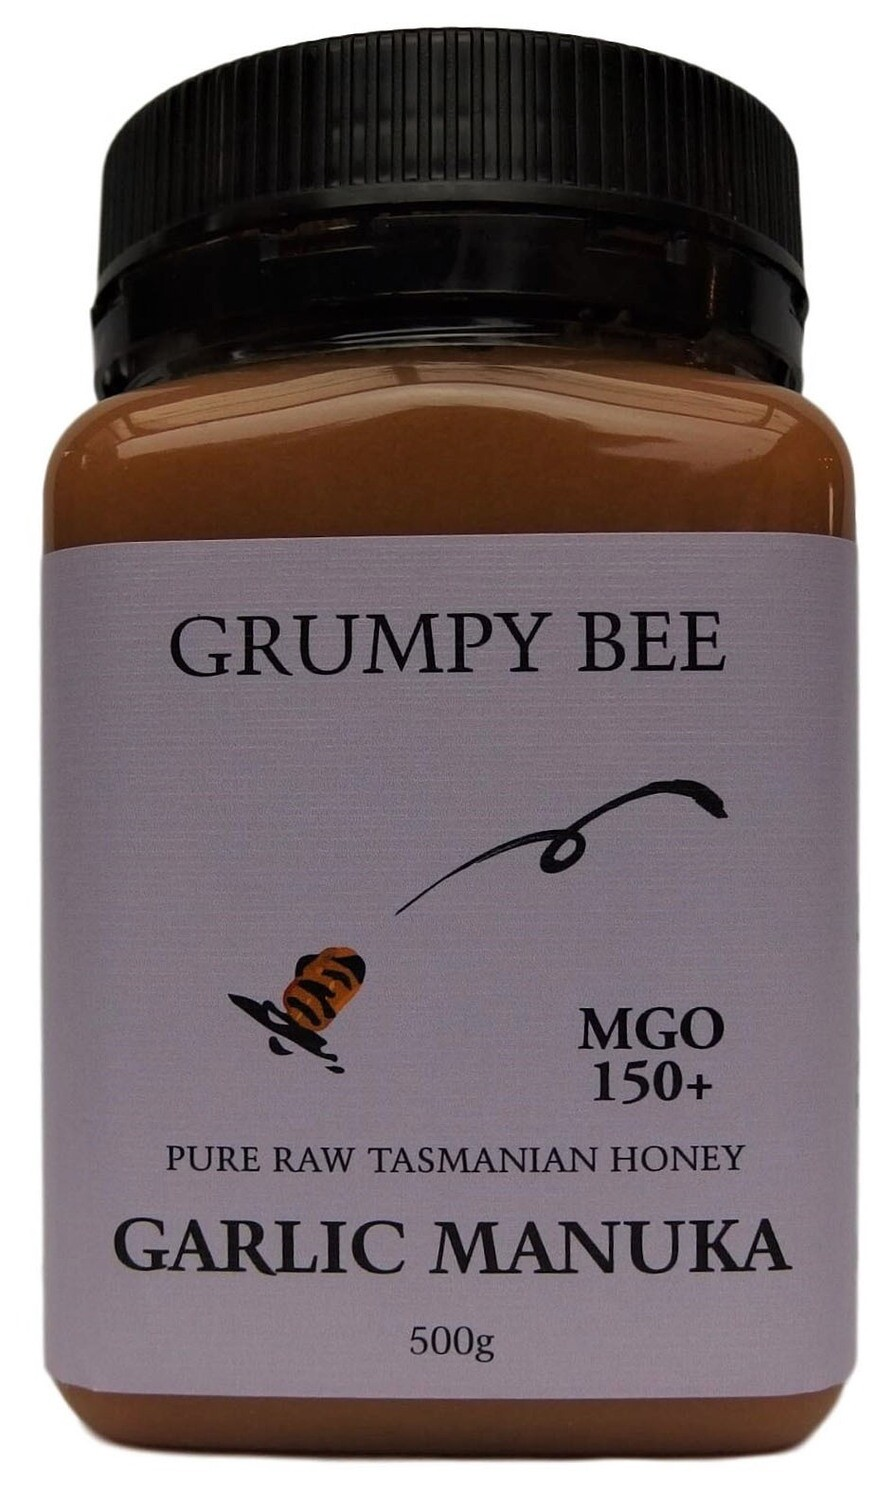 Grumpy Bee Garlic Manuka Honey MGO 150+ 500g